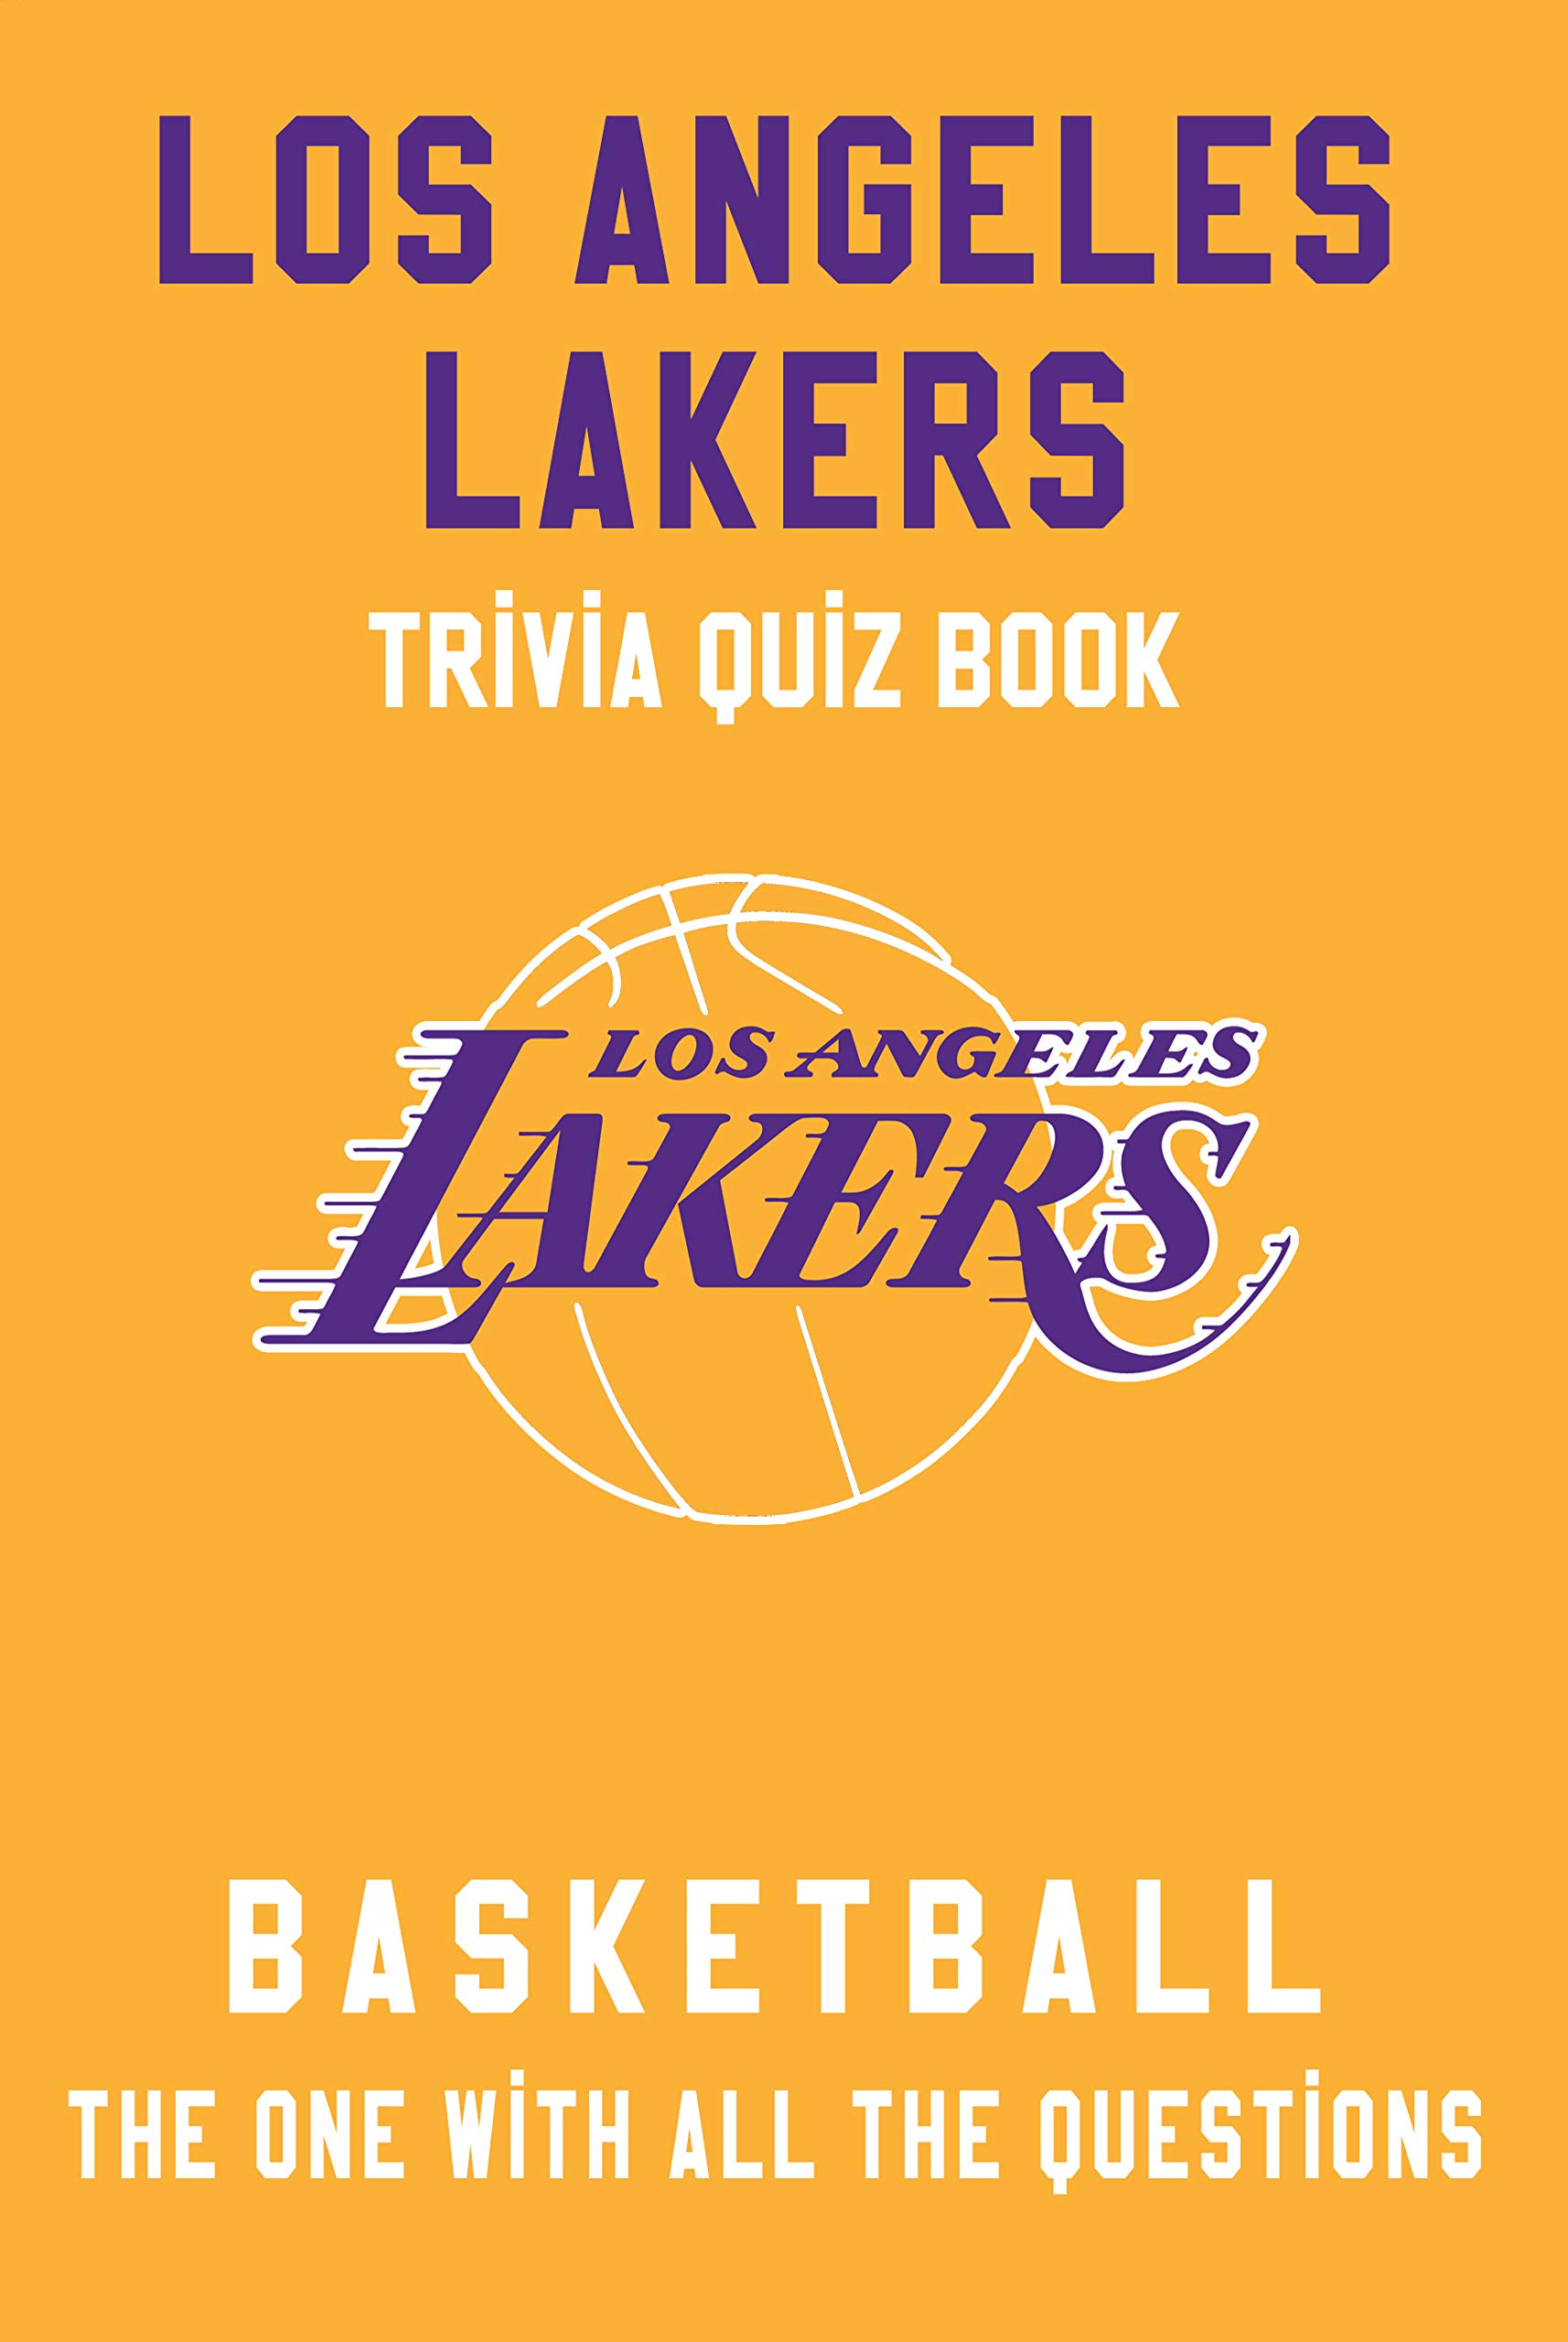 Los Angeles Lakers Trivia Quiz Book - Basketball - The One With All The Questions: NBA Basketball Fan - Gift for fan of Los Angeles Lakers por Bonnie Oviedo